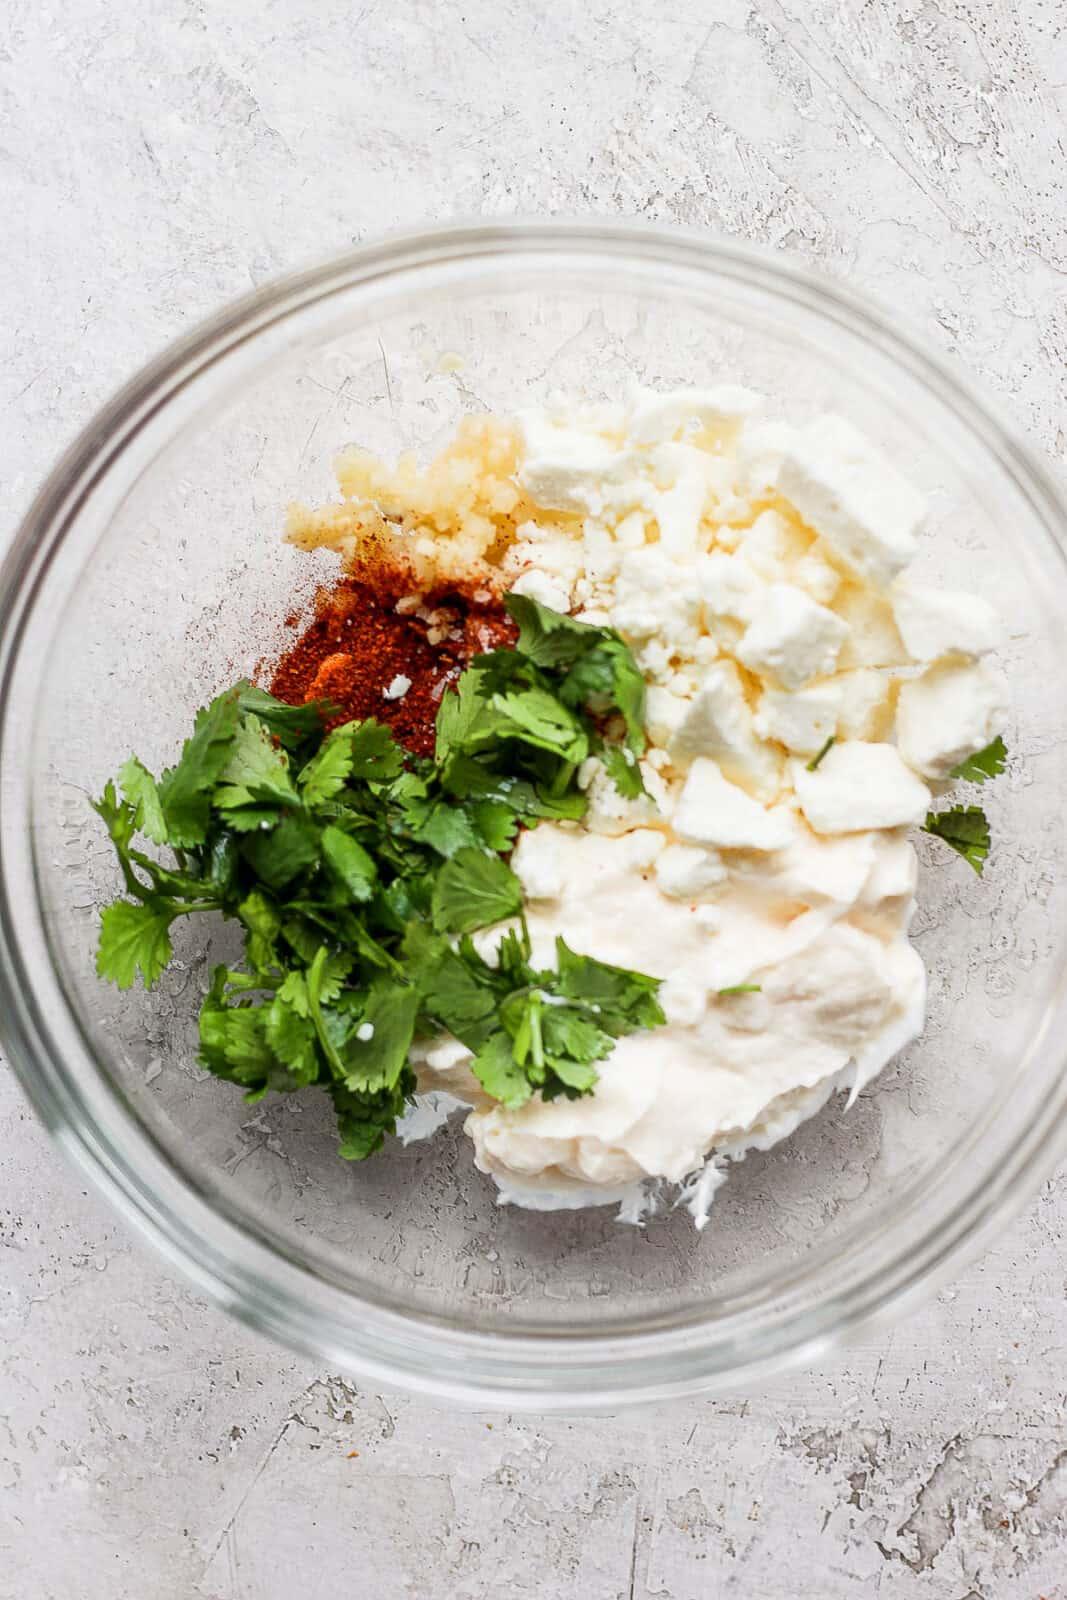 Mayo, feta, cilantro, and spices in a mixing bowl.